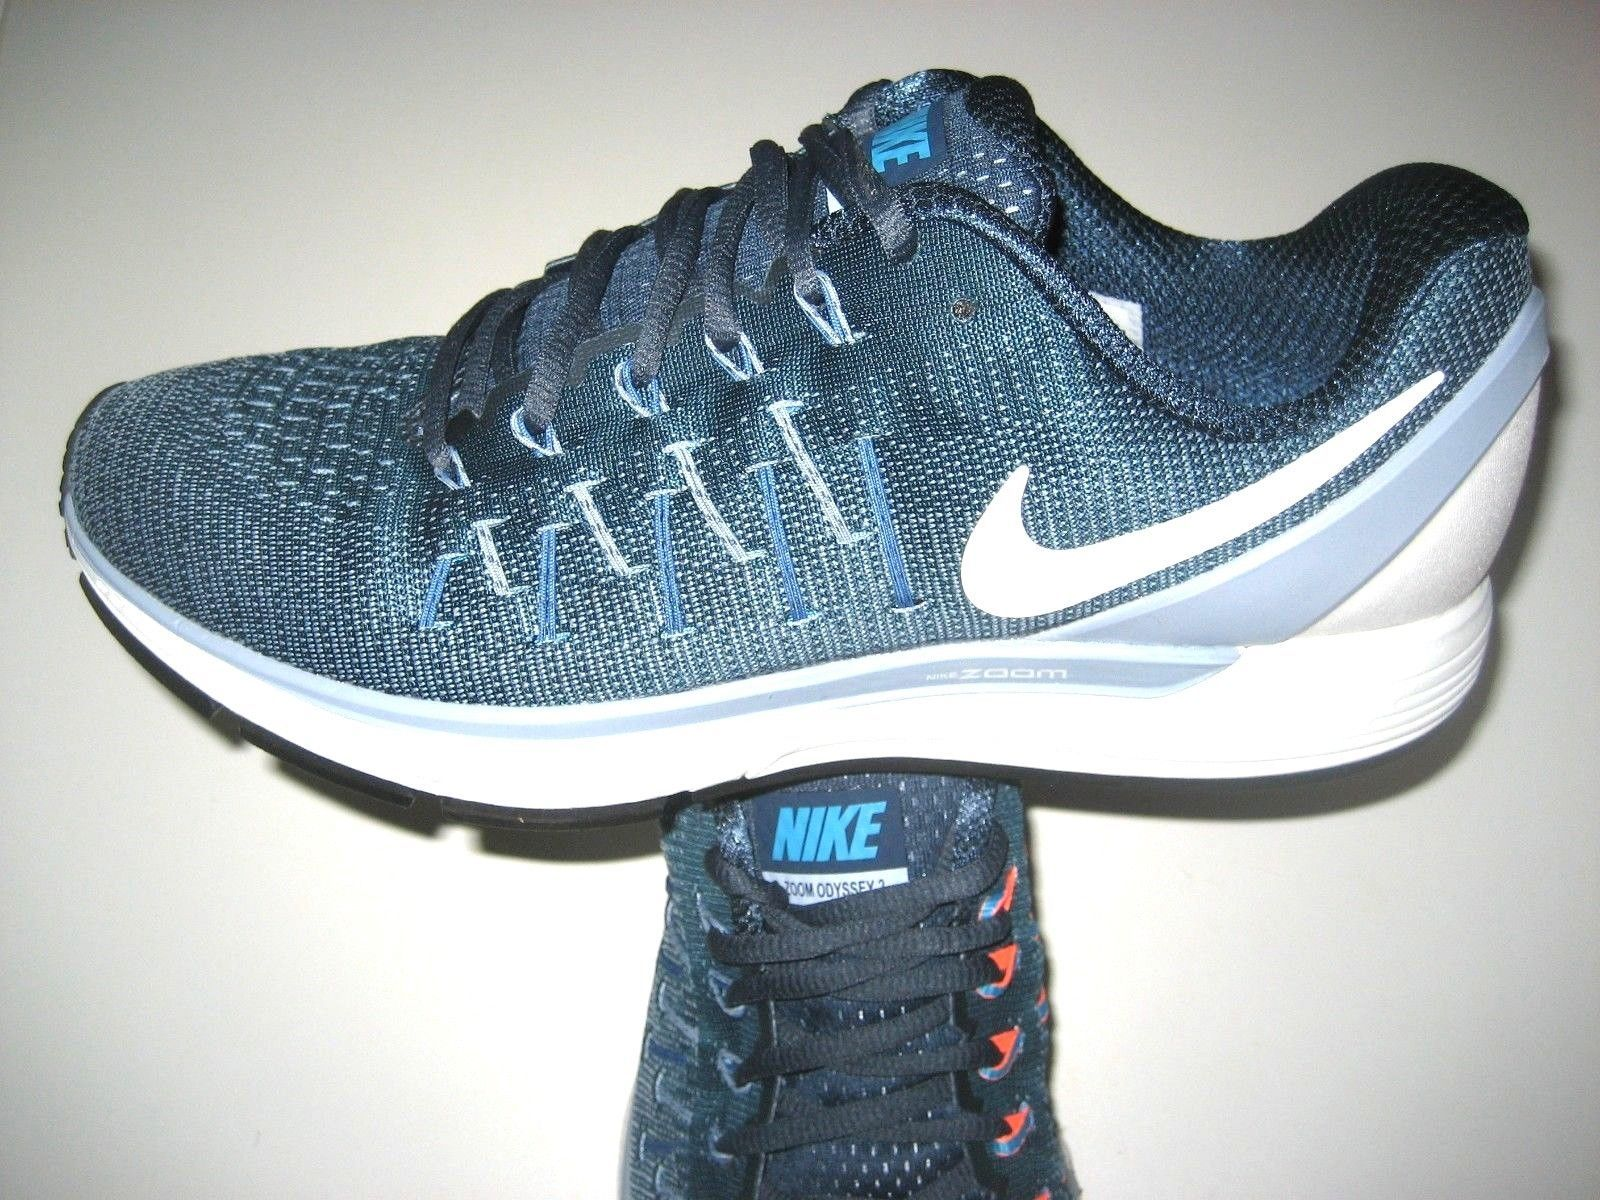 e9c5e38d5c4d6 Nike Mens Air Zoom Odyssey 2 Running Shoes Size 9 Squadron Blue 844545 400  New